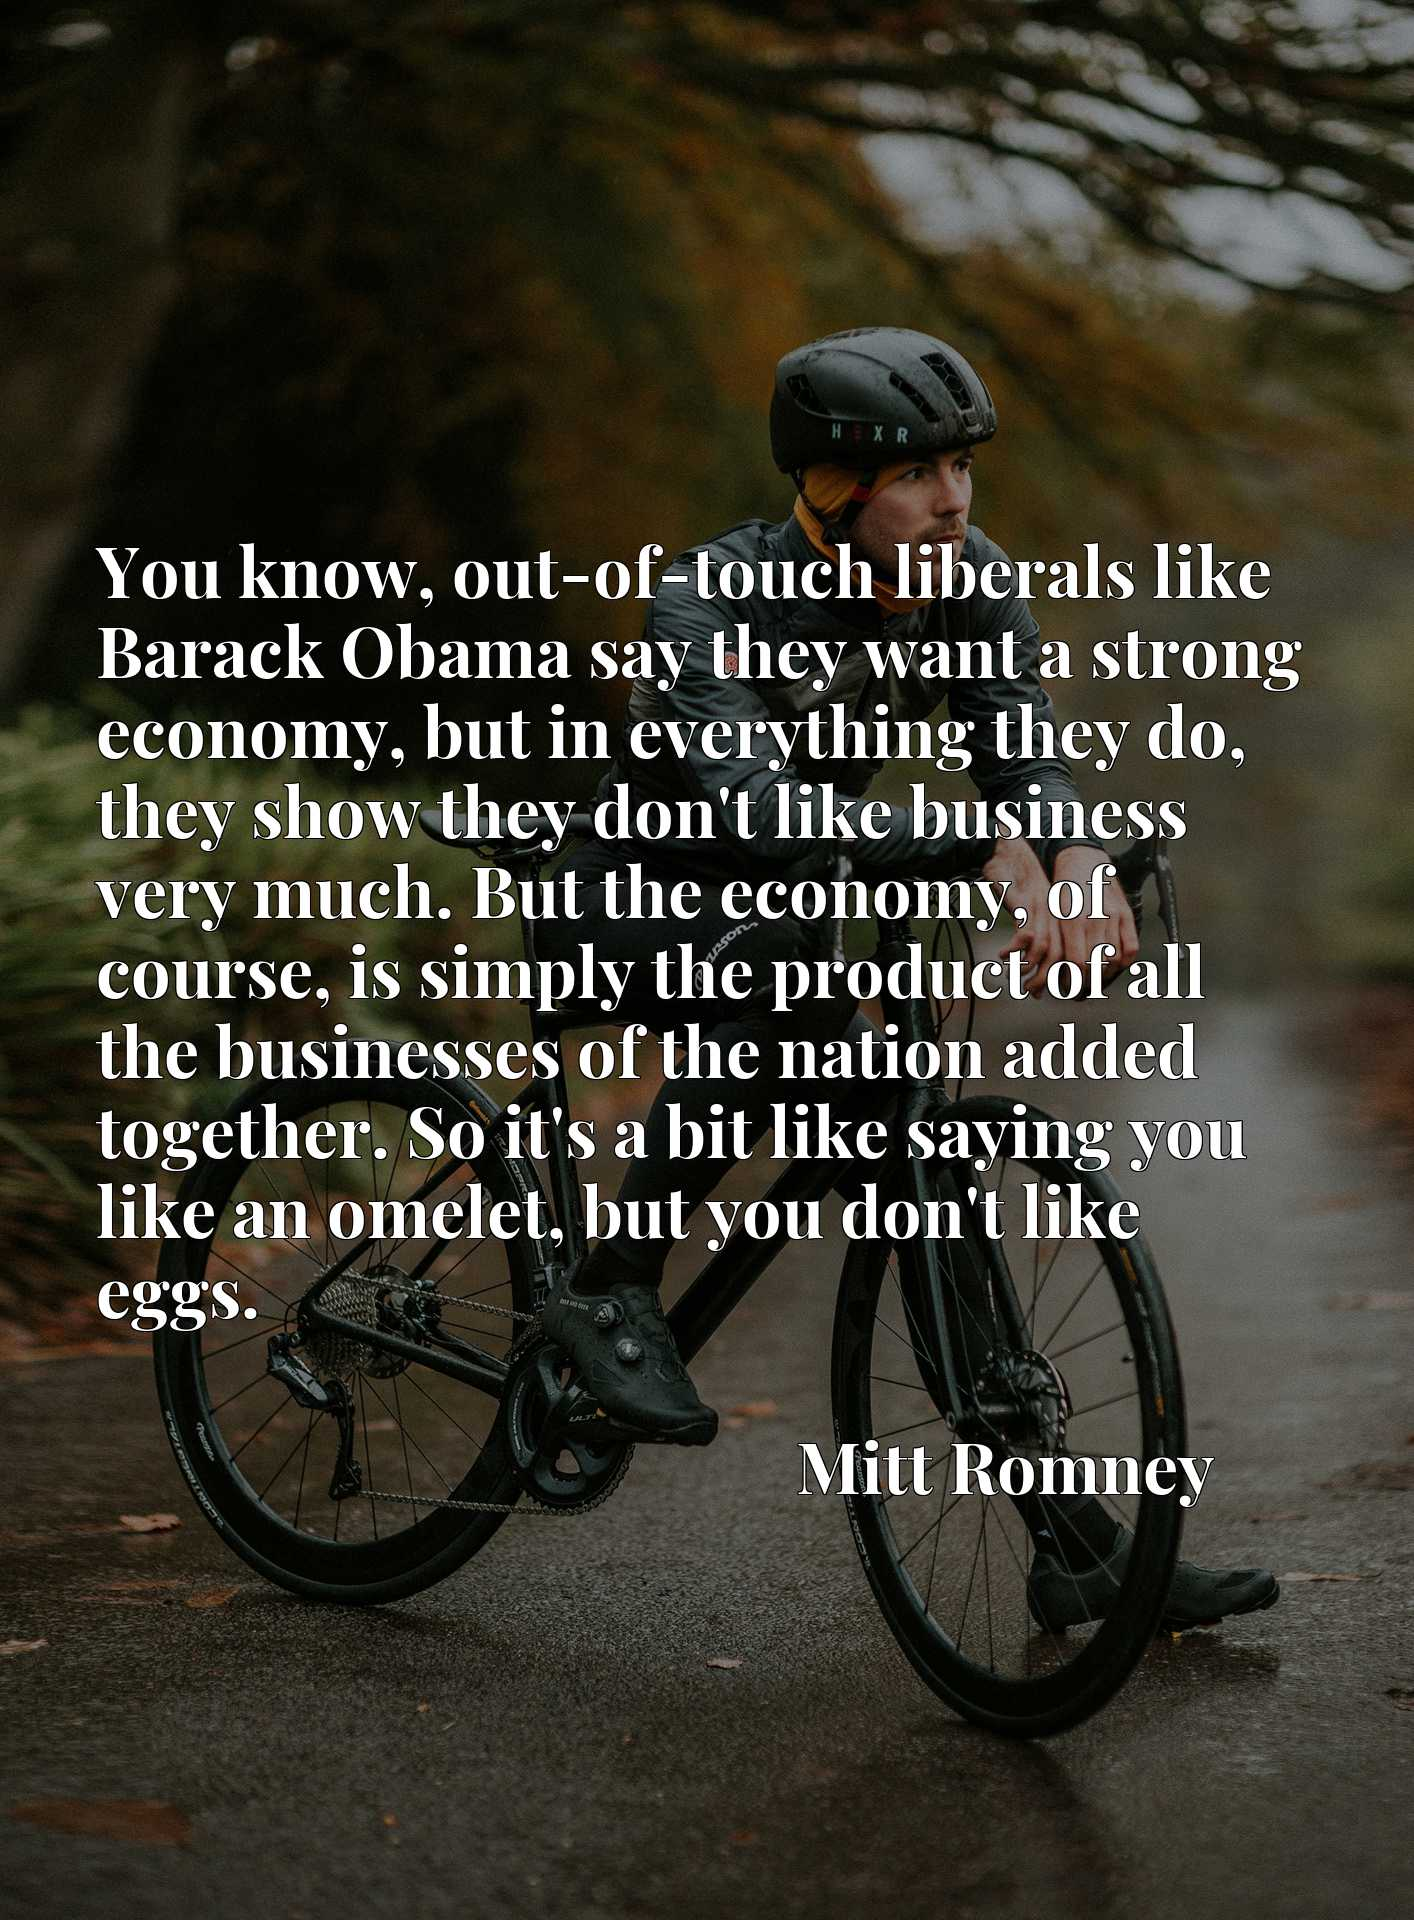 You know, out-of-touch liberals like Barack Obama say they want a strong economy, but in everything they do, they show they don't like business very much. But the economy, of course, is simply the product of all the businesses of the nation added together. So it's a bit like saying you like an omelet, but you don't like eggs.